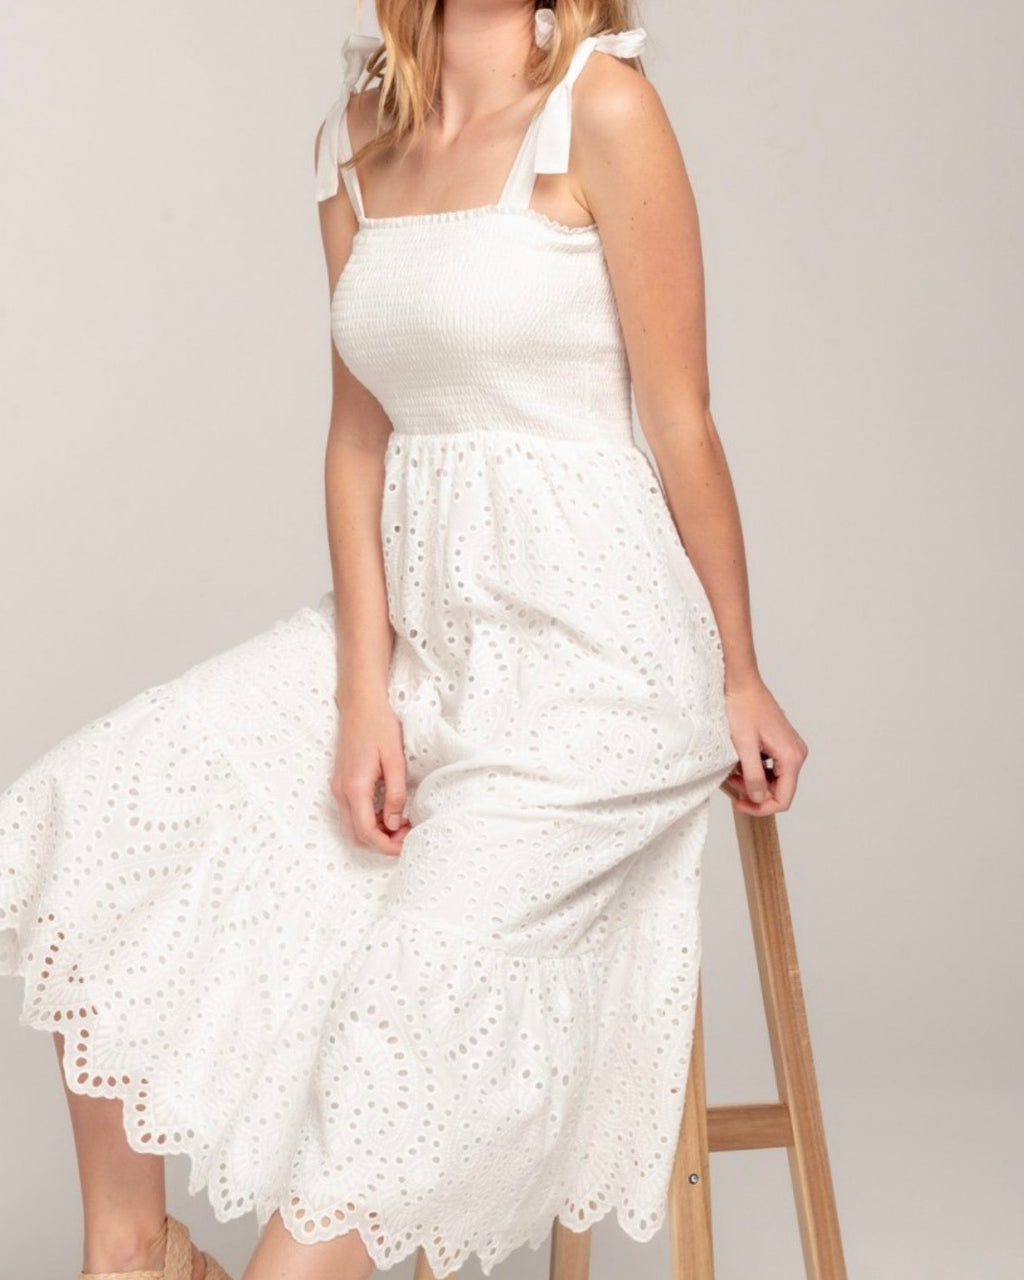 Everly - lovely lace smocked top eyelet midi maxi dress in white